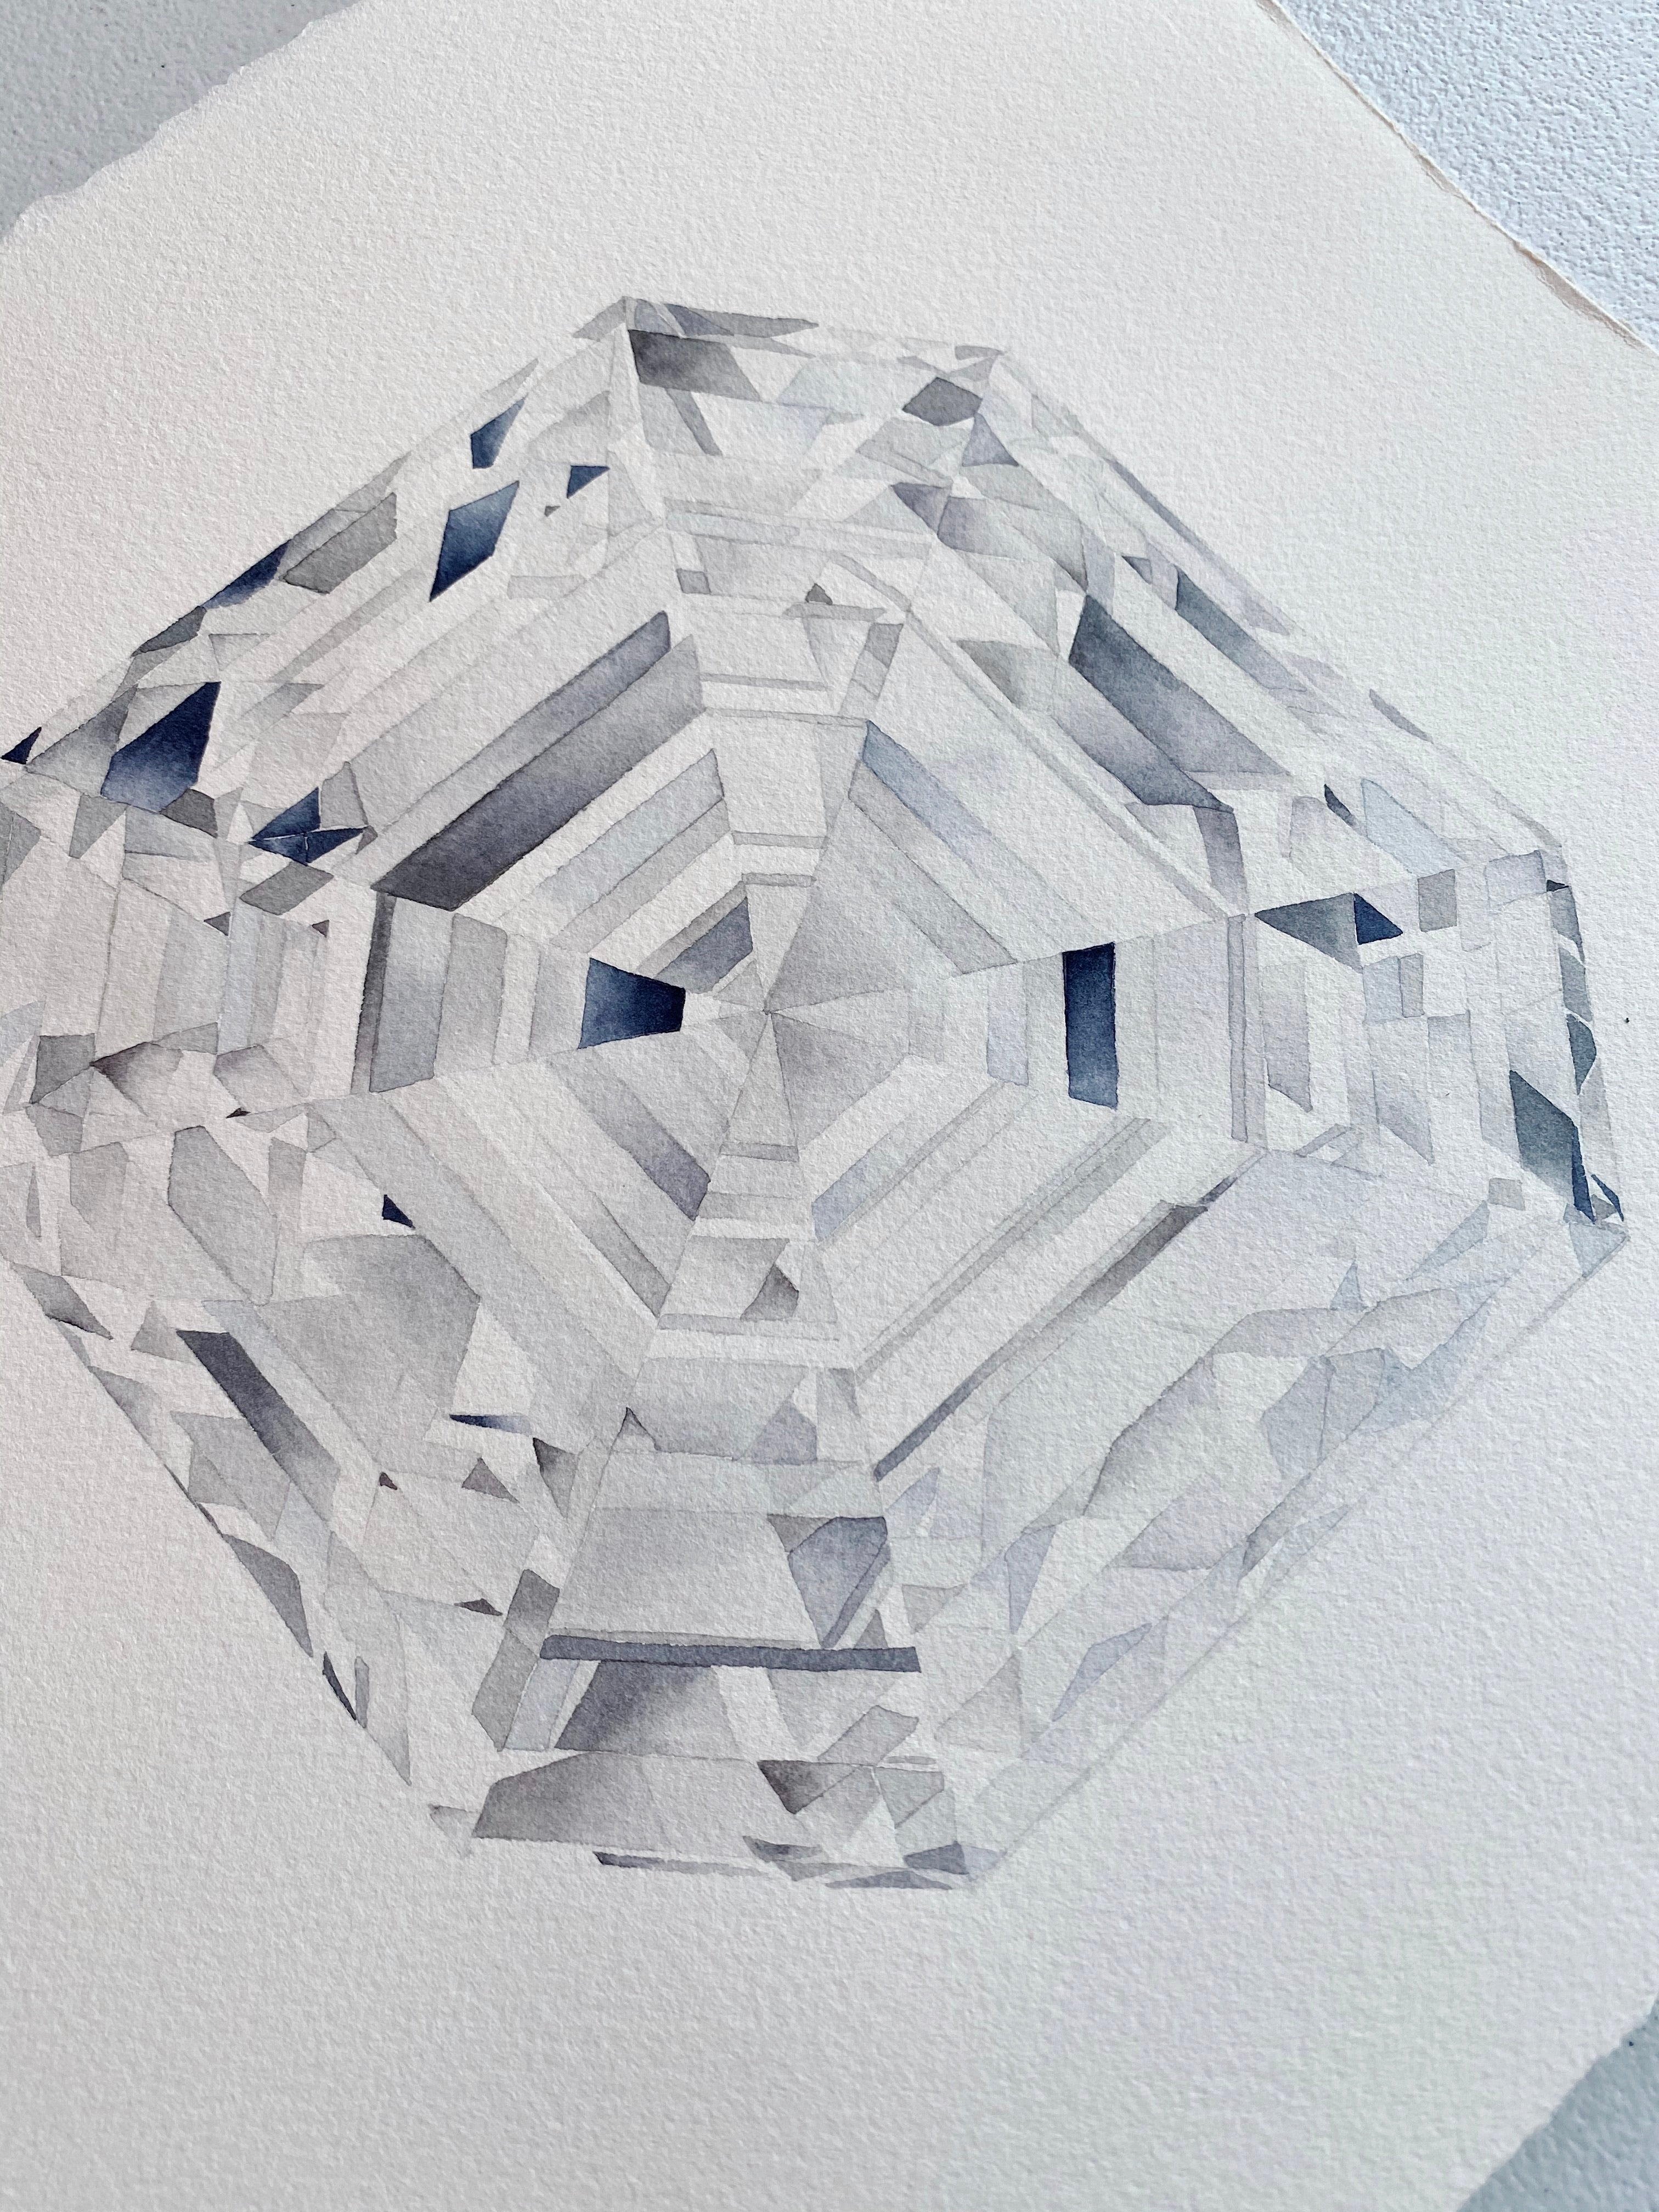 Original Painting - Watercolor Asscher Cut Diamond Painting 11x15 inches